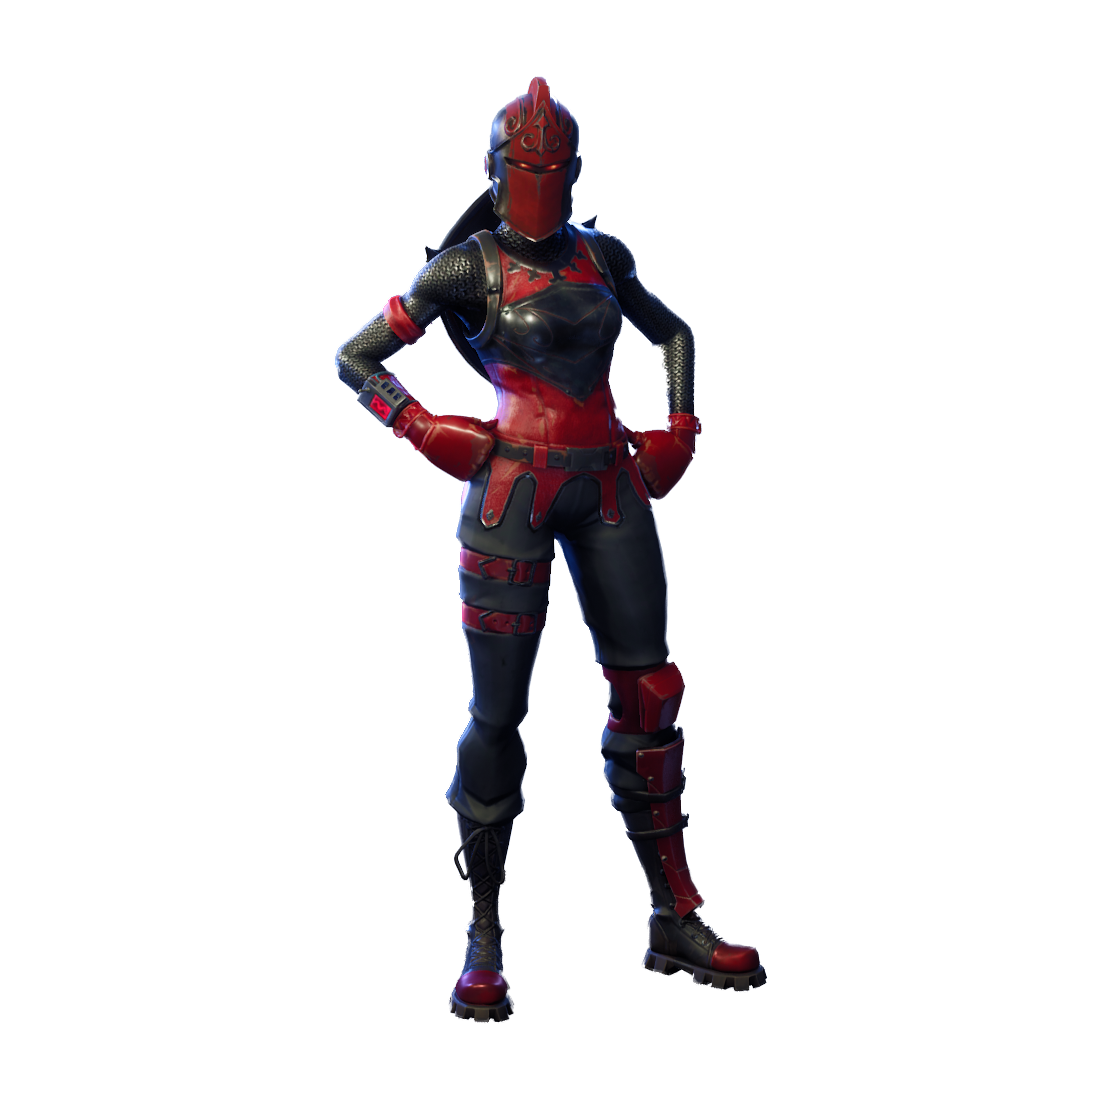 Fortnite Red Knight PNG Image - PurePNG | Free transparent ...